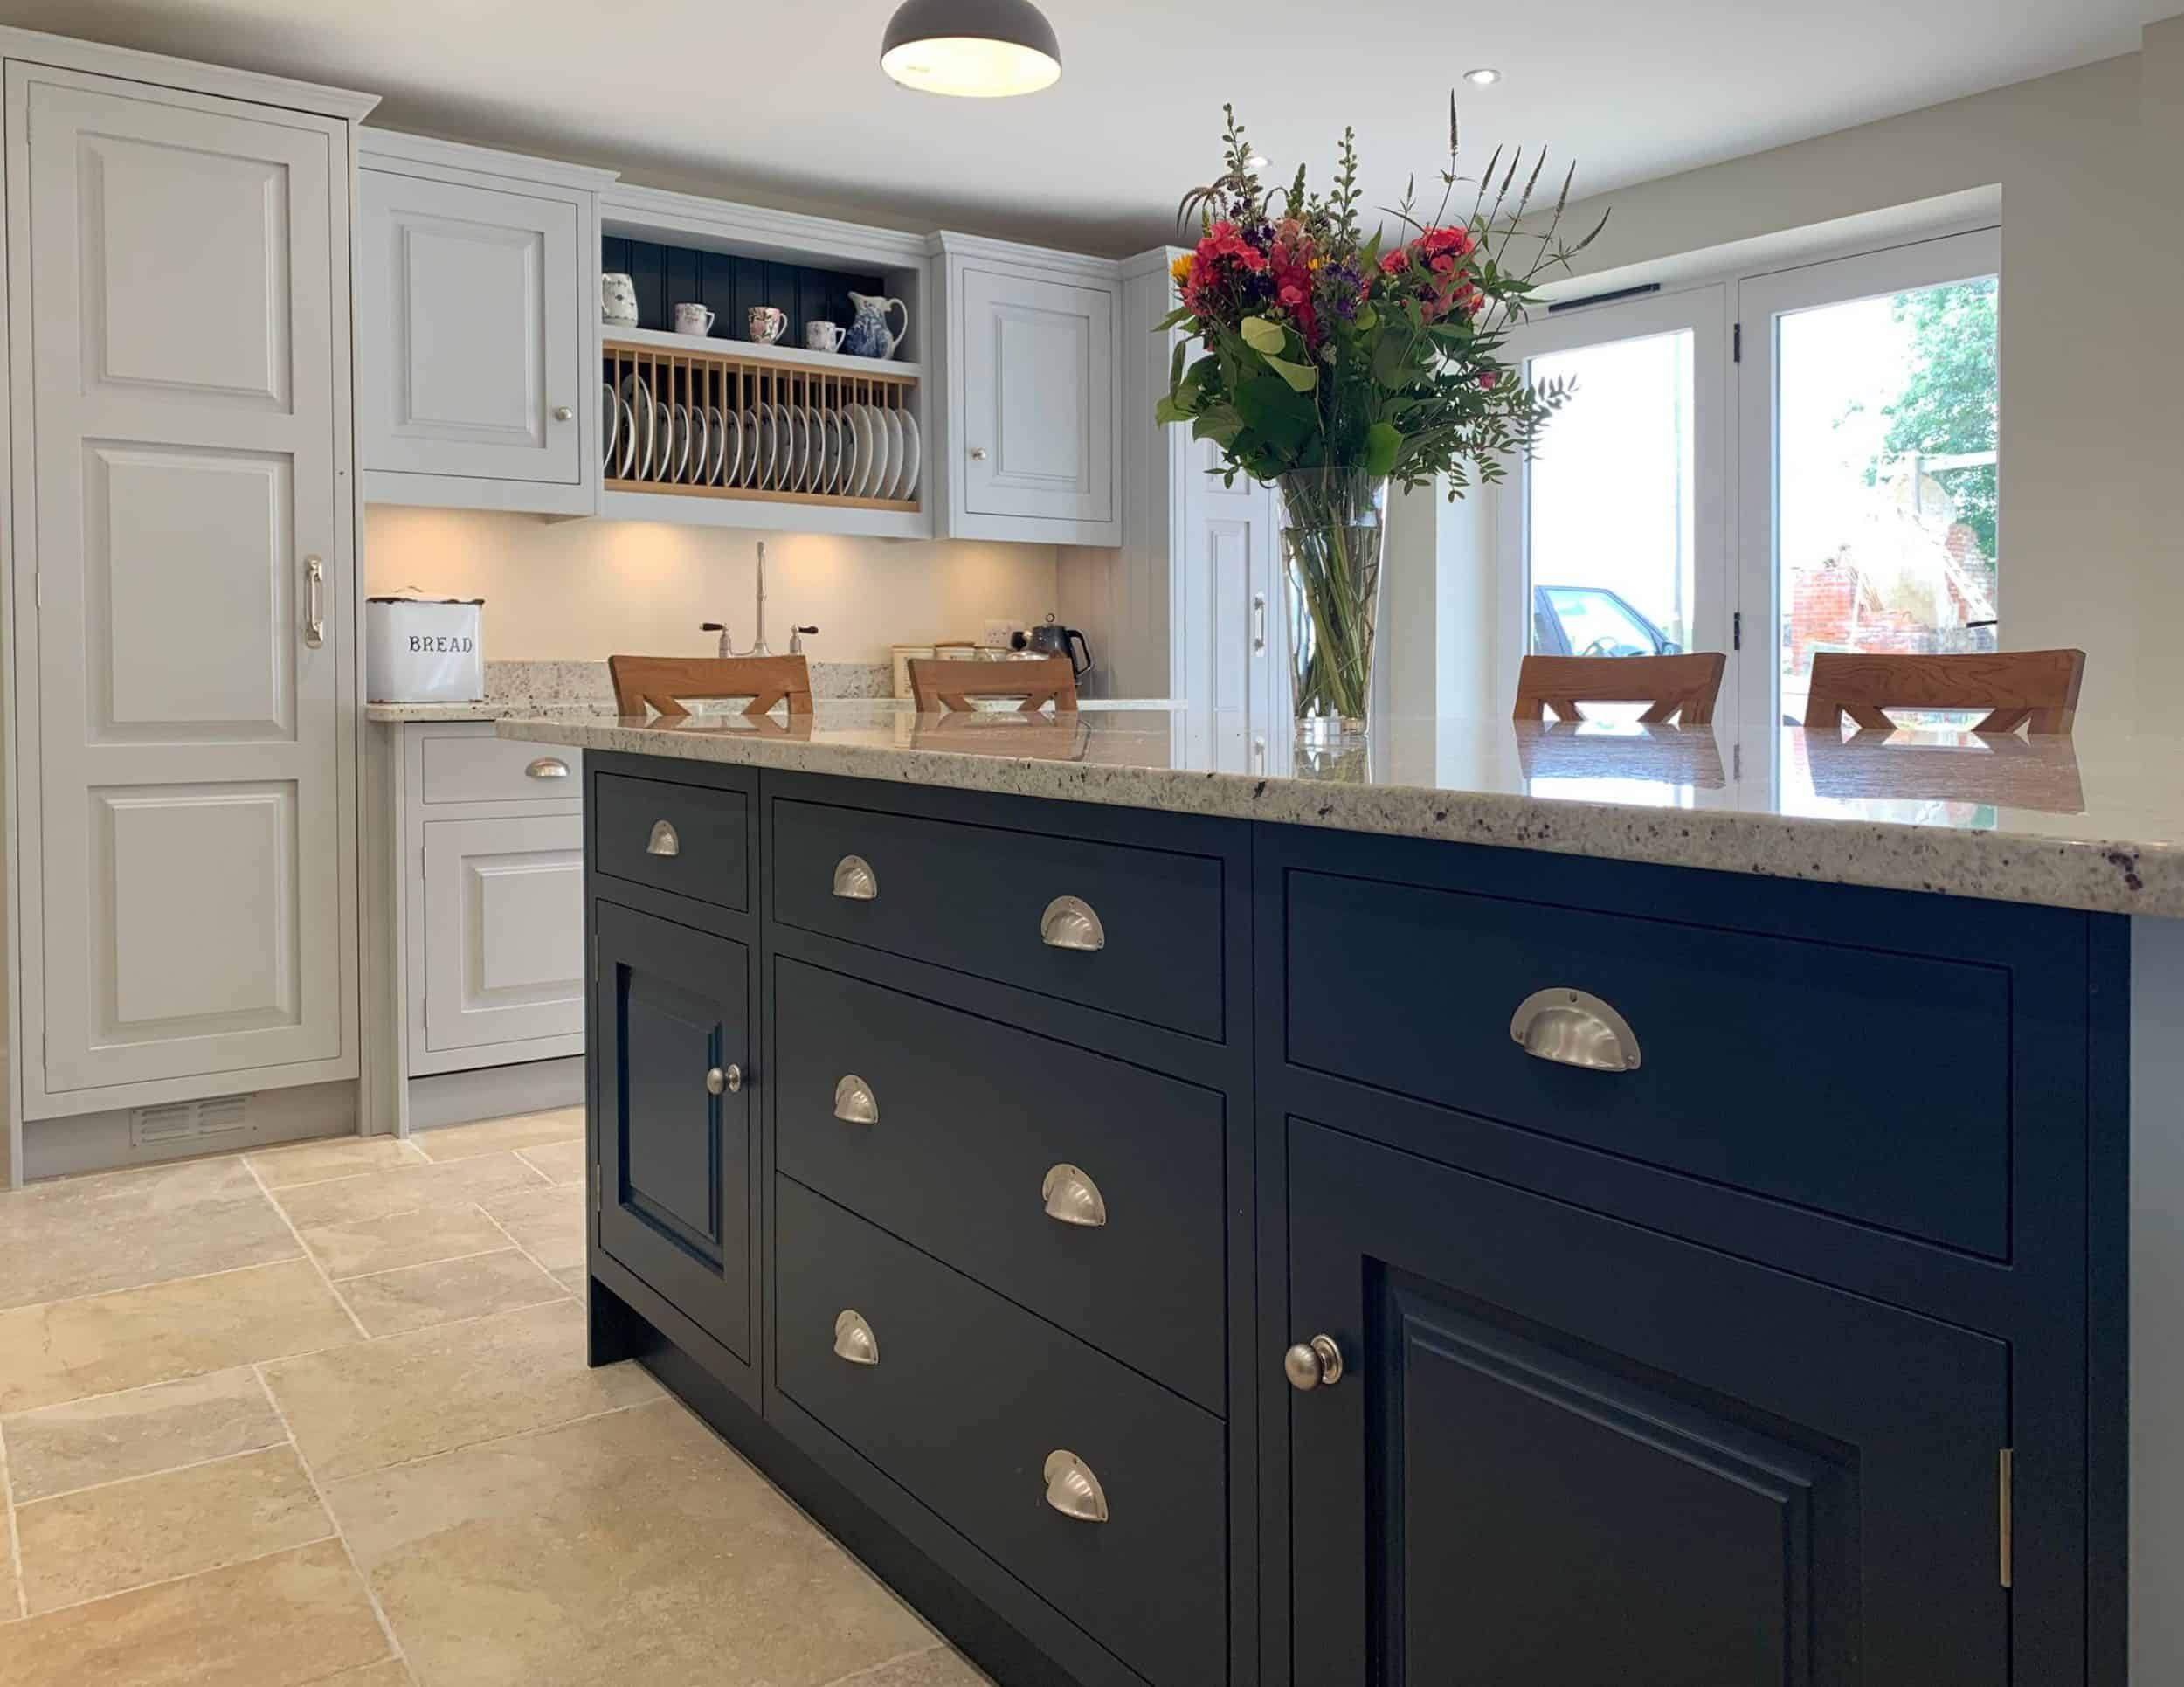 Artisan Kitchen Island John Lewis of Hungerford